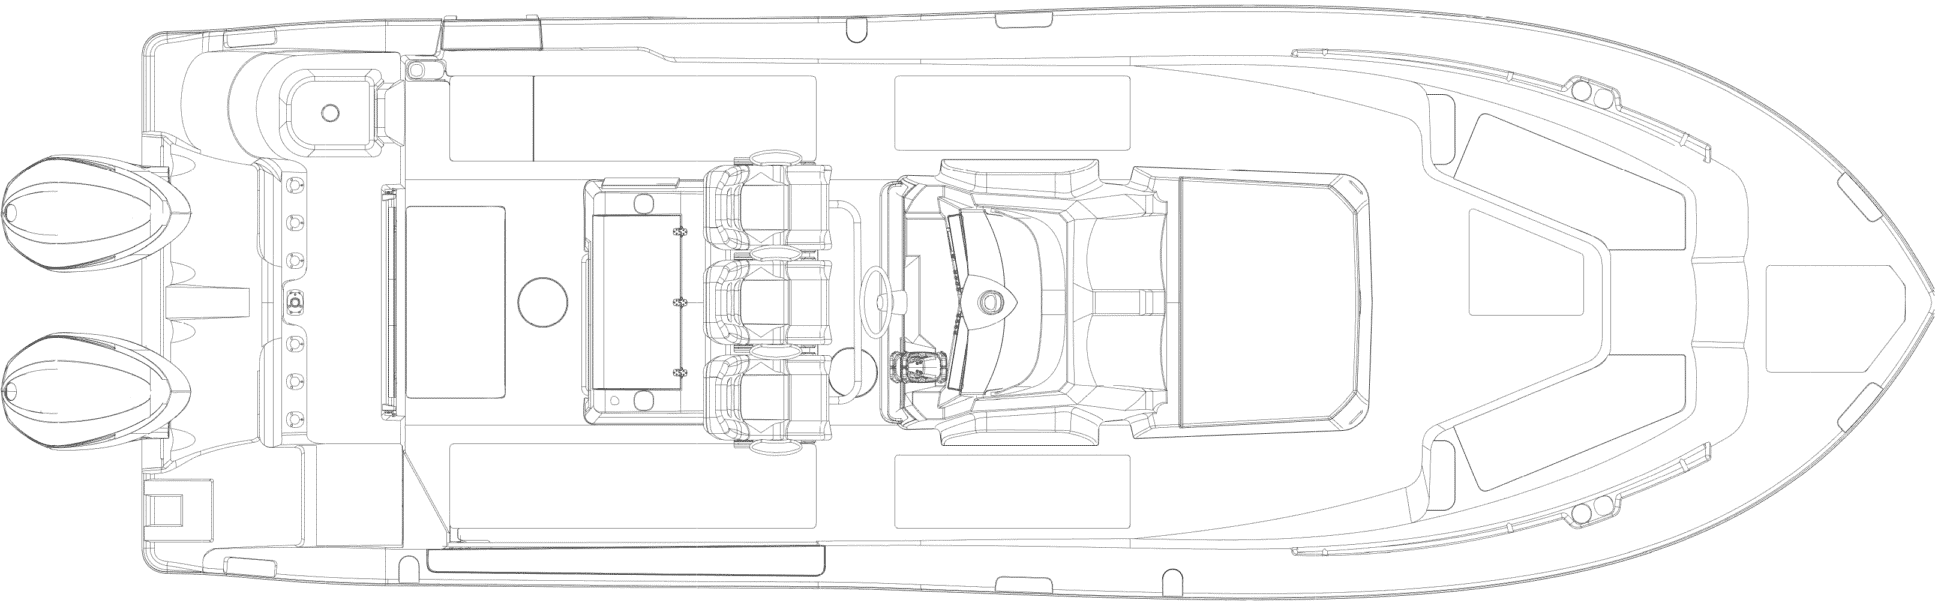 328-plan-view-new-Cropped